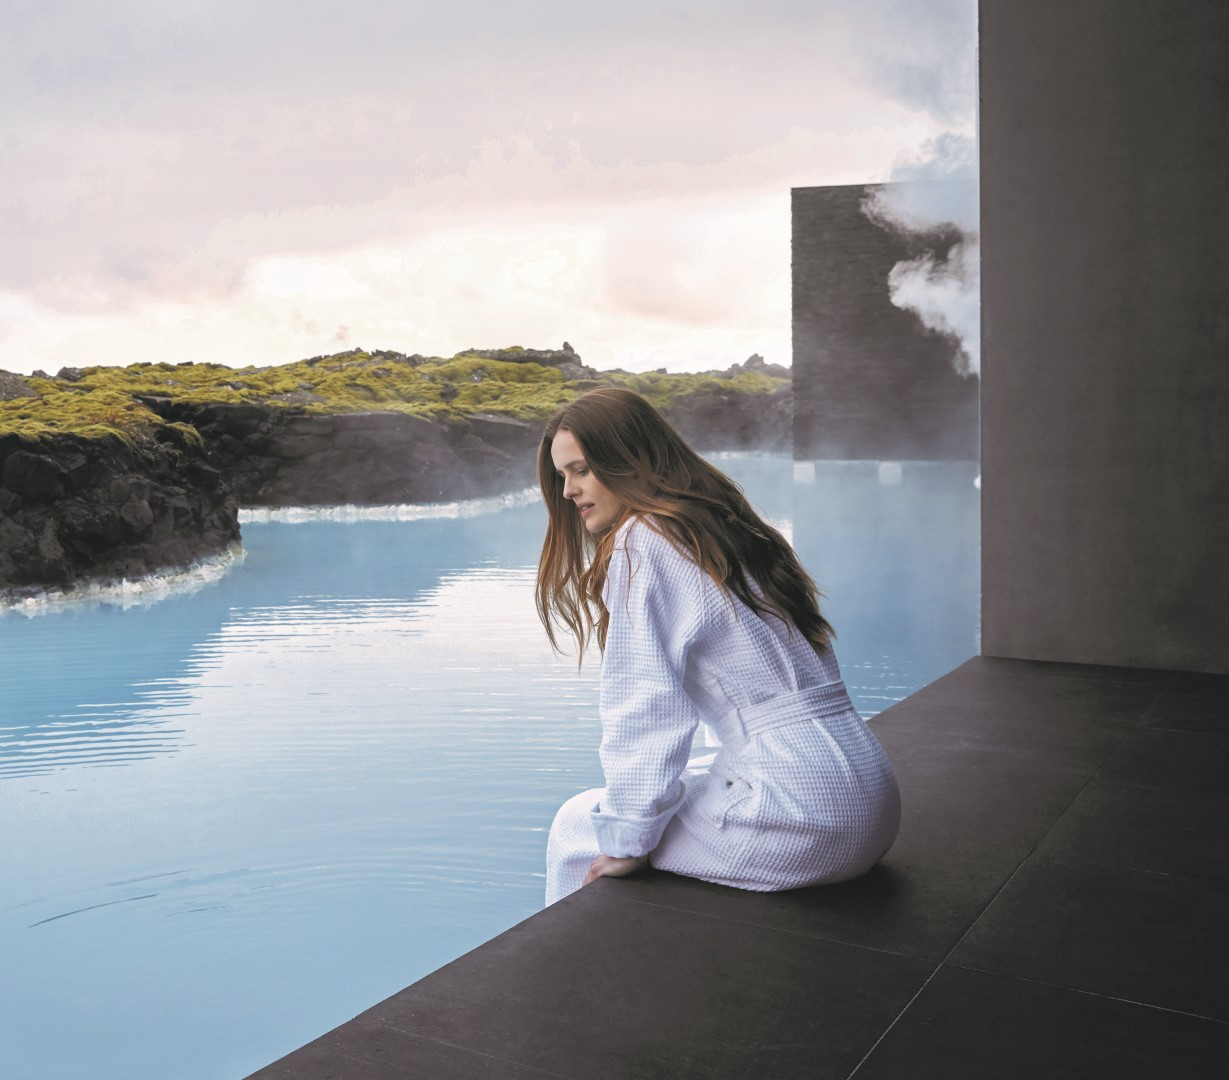 Warm and Inviting - Global Hot Springs